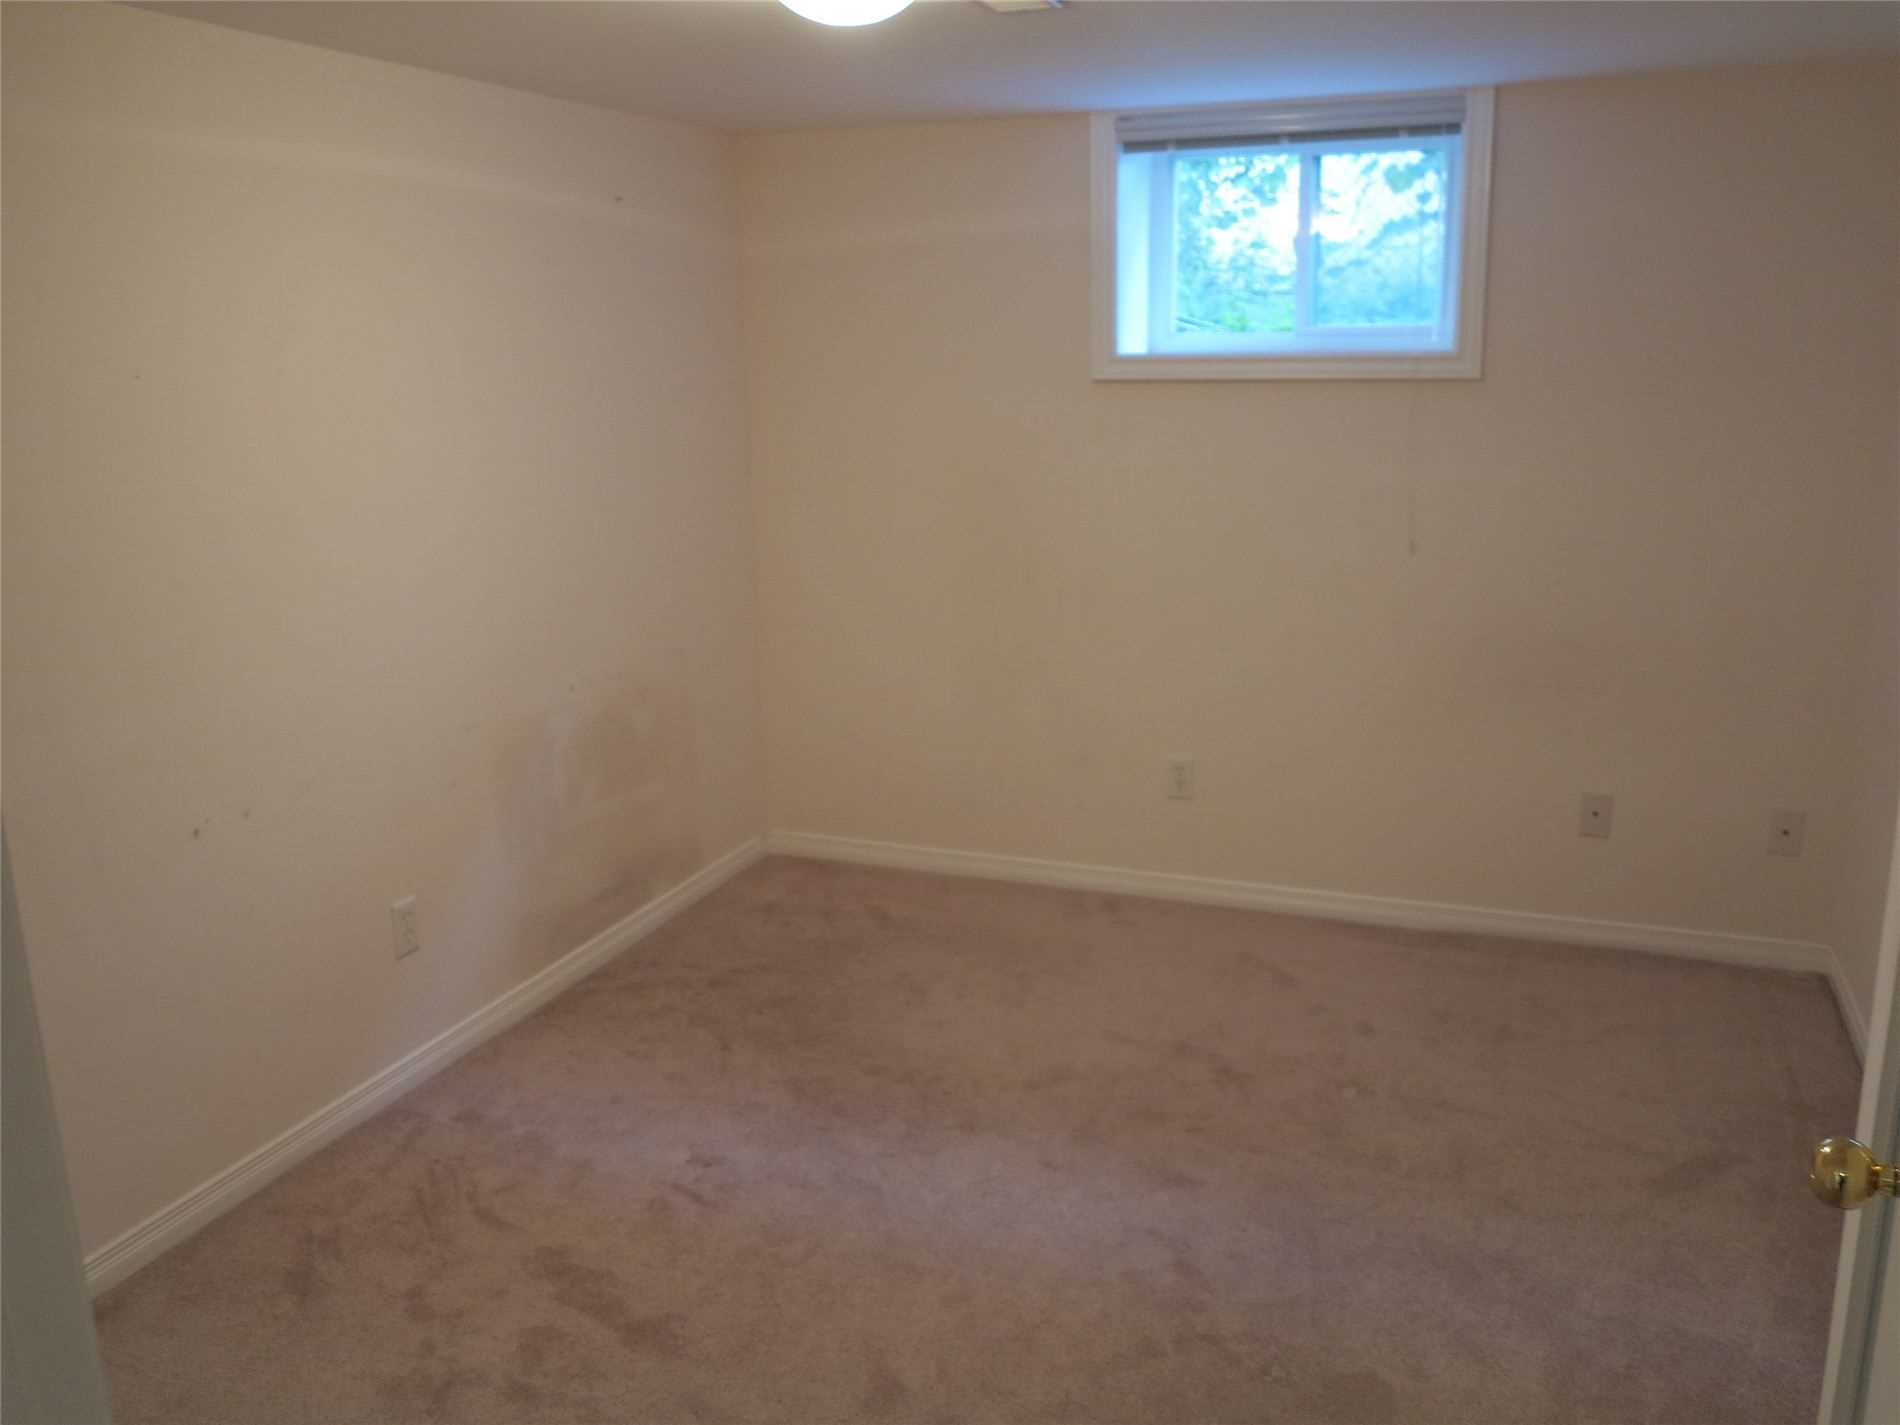 Image 4 of 30 showing inside of 3 Bedroom Detached Bungalow for Lease at 456 Drewry Ave, Toronto M2R2K7